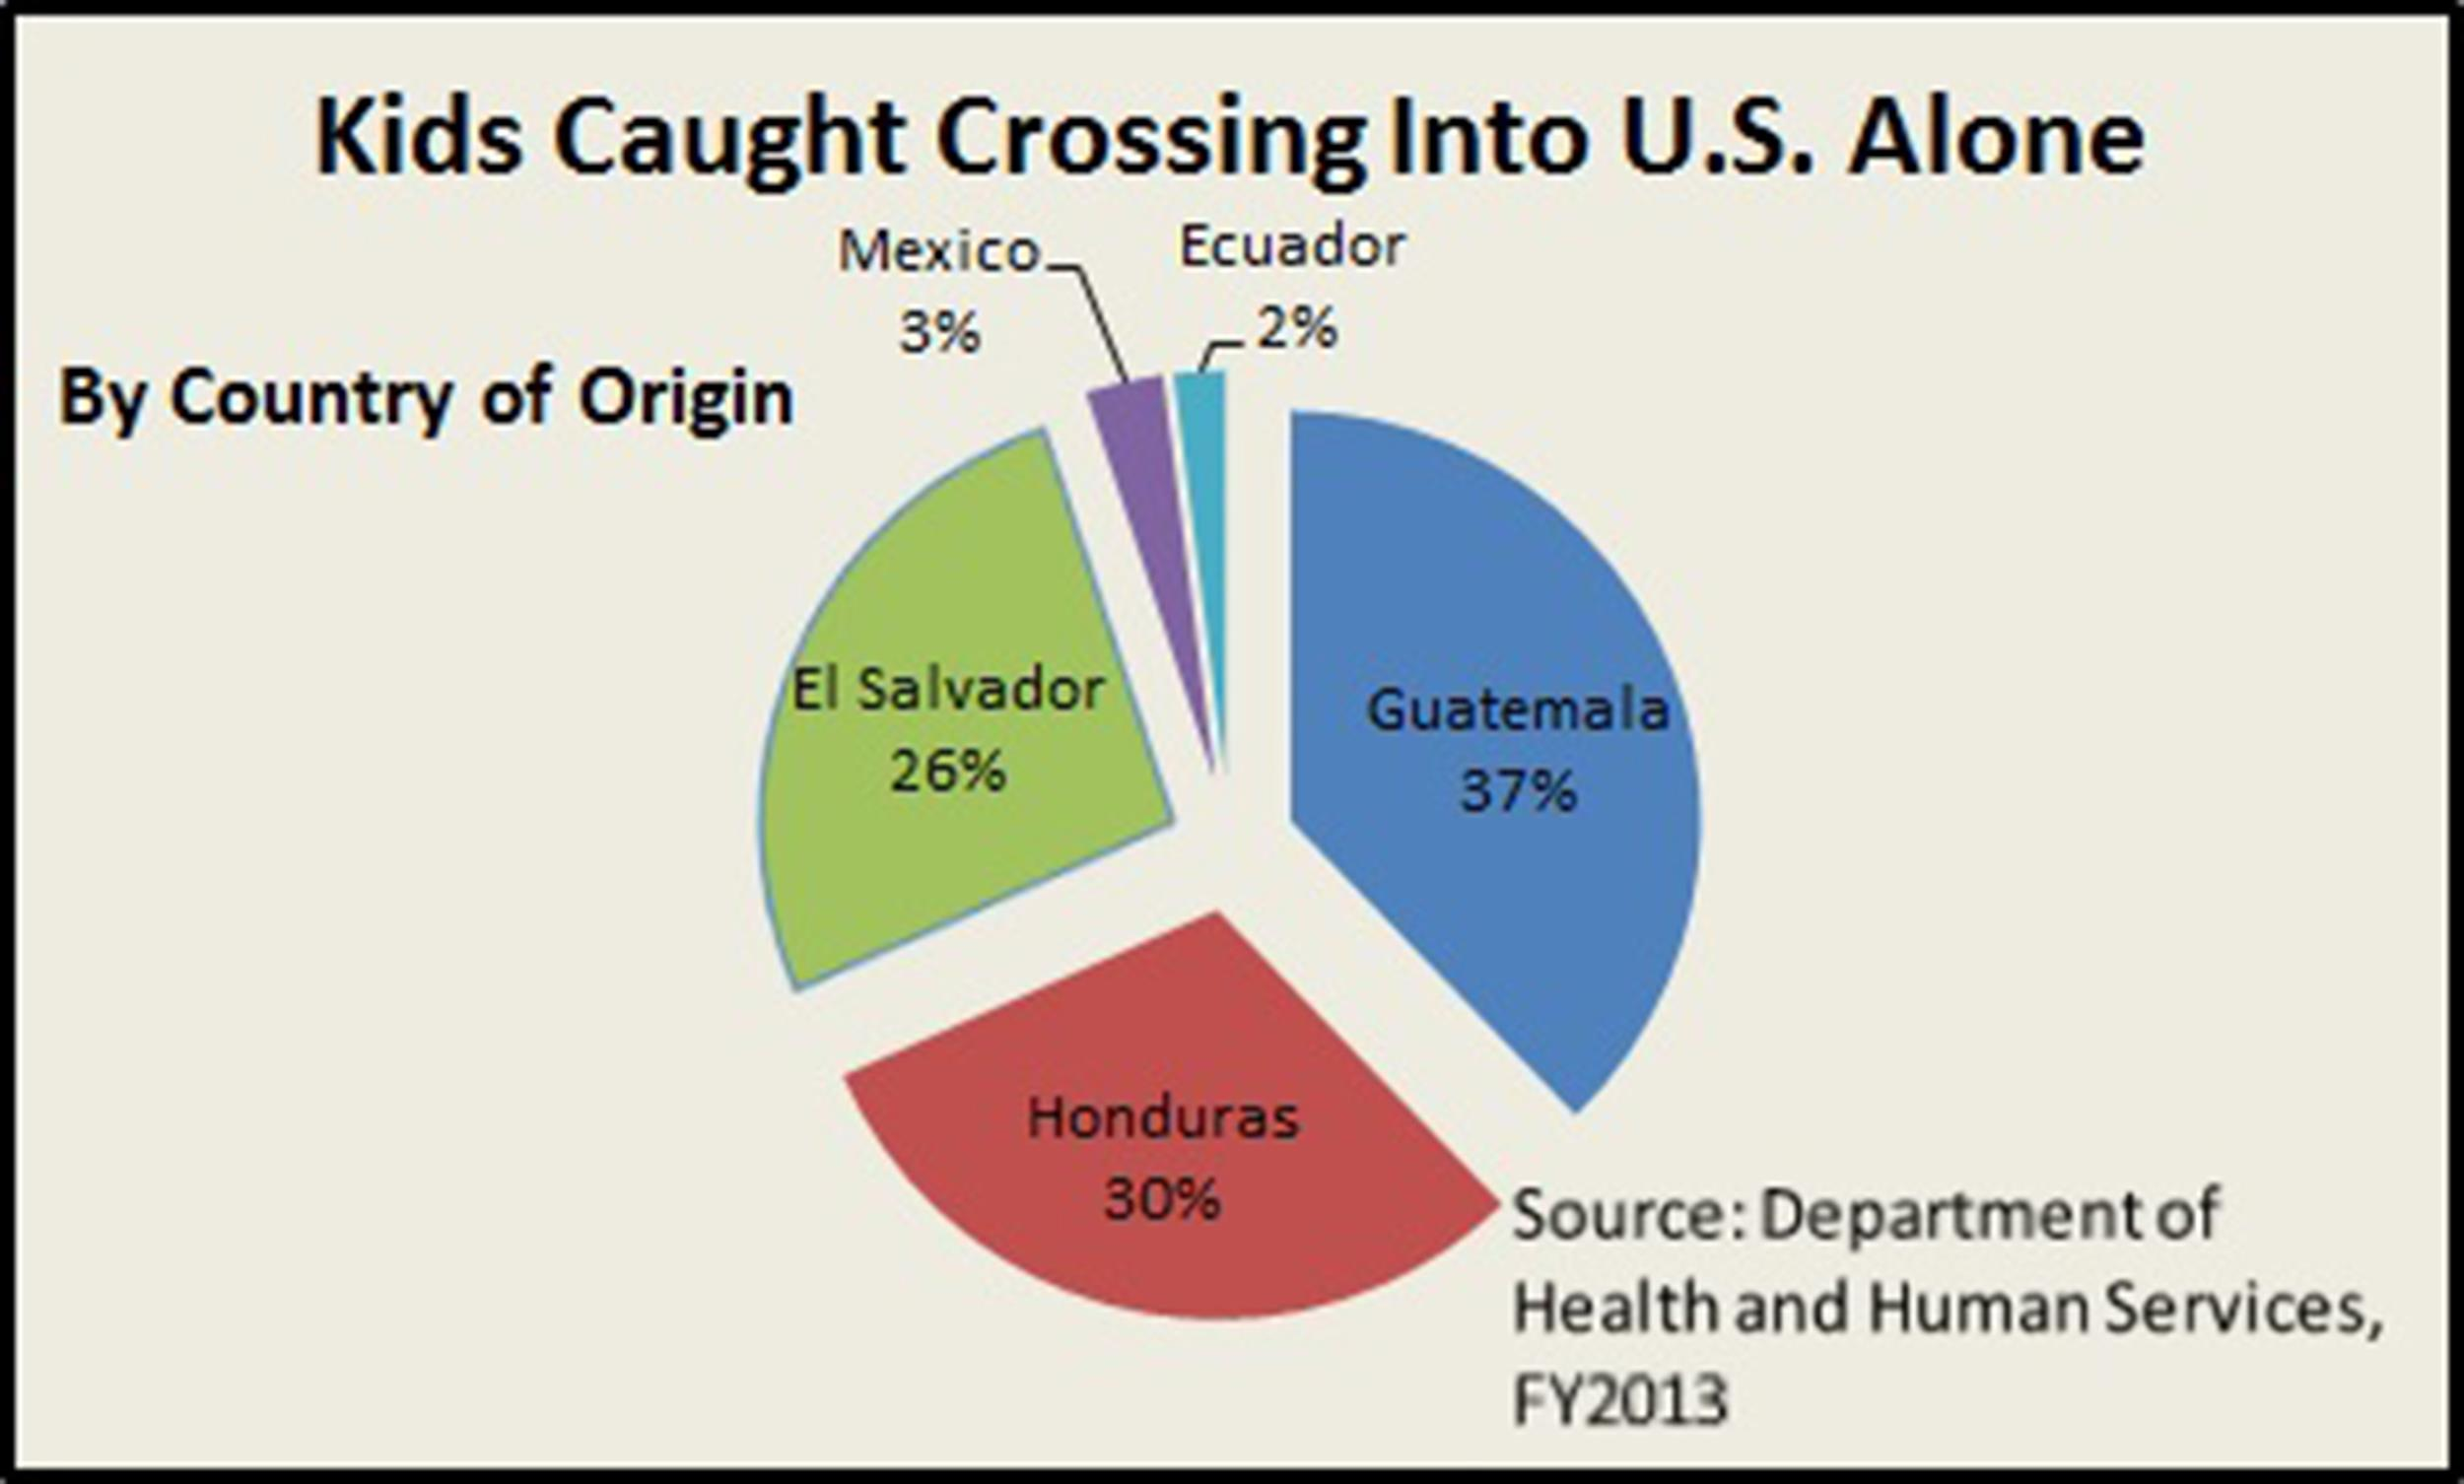 Image: A graphic on children caught crossing into the U.S. alone